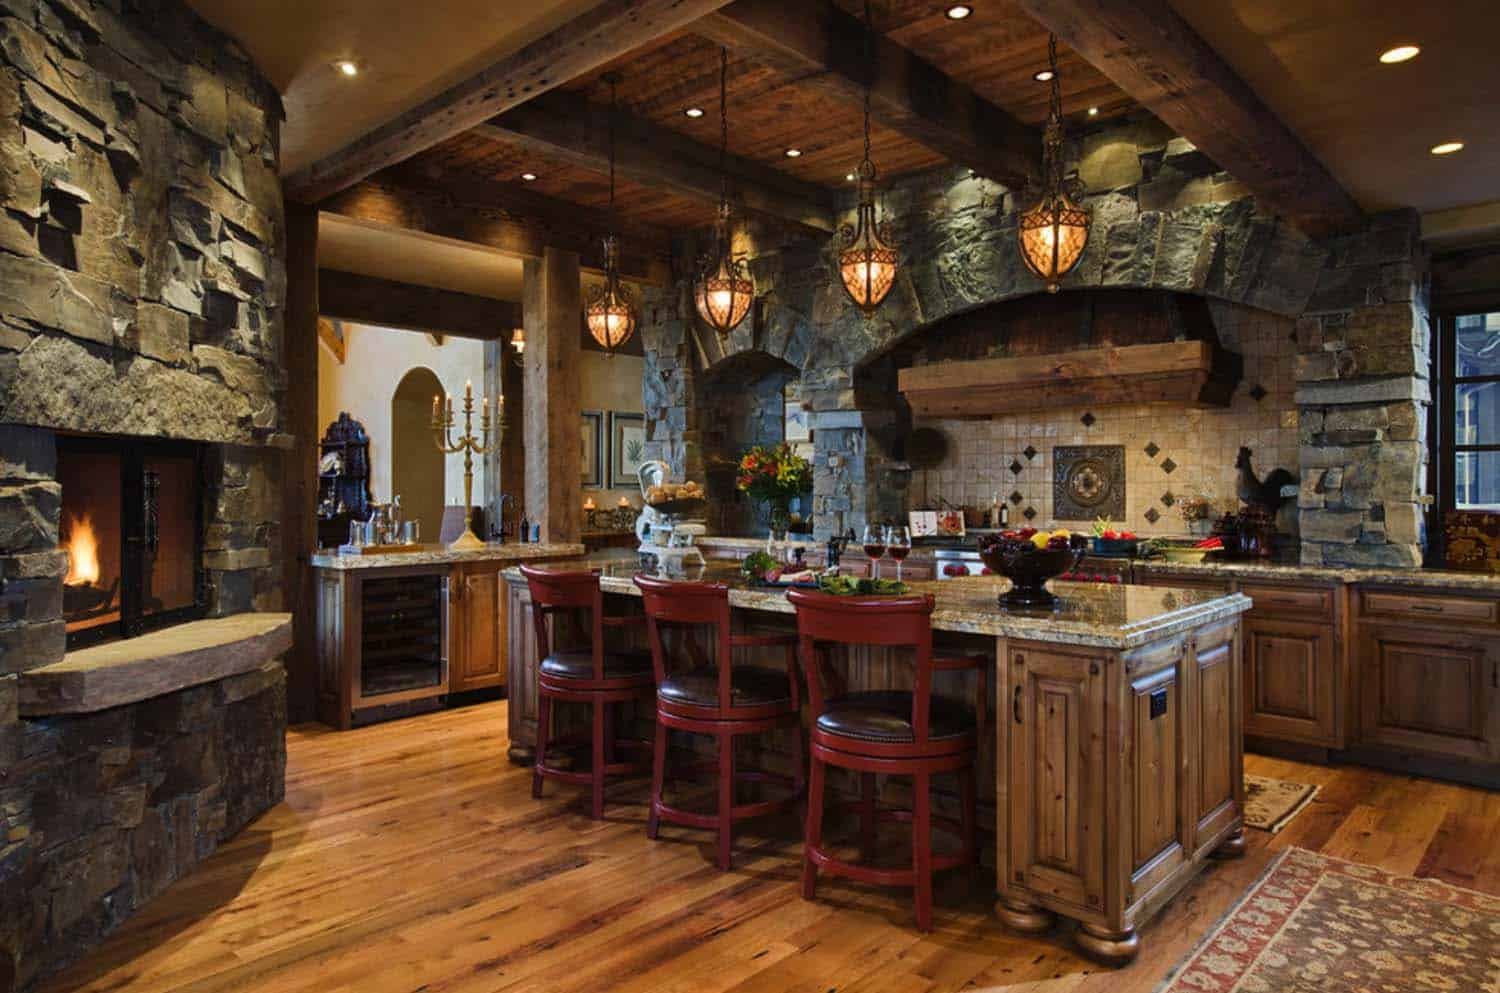 Kitchen Showcasing Cozy Fireplace-13-1 Kindesign